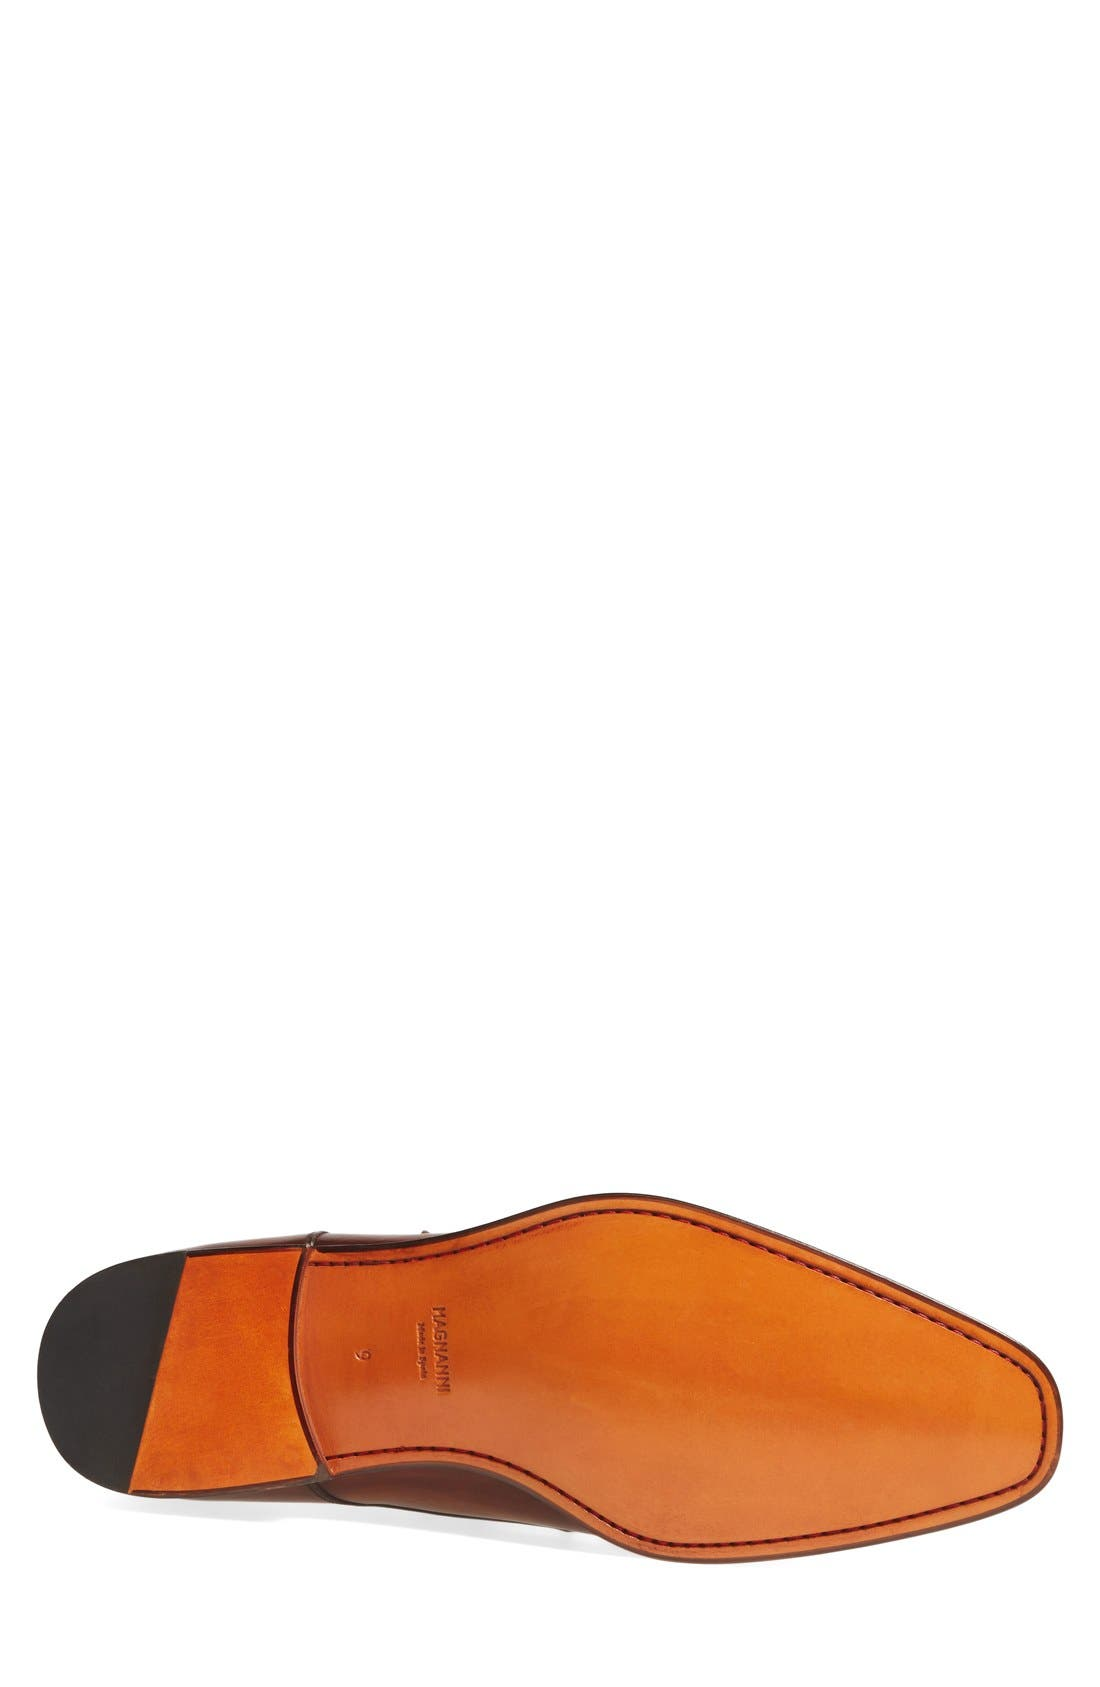 MAGNANNI, Marco Monk Strap Loafer, Alternate thumbnail 5, color, CUERO BROWN LEATHER